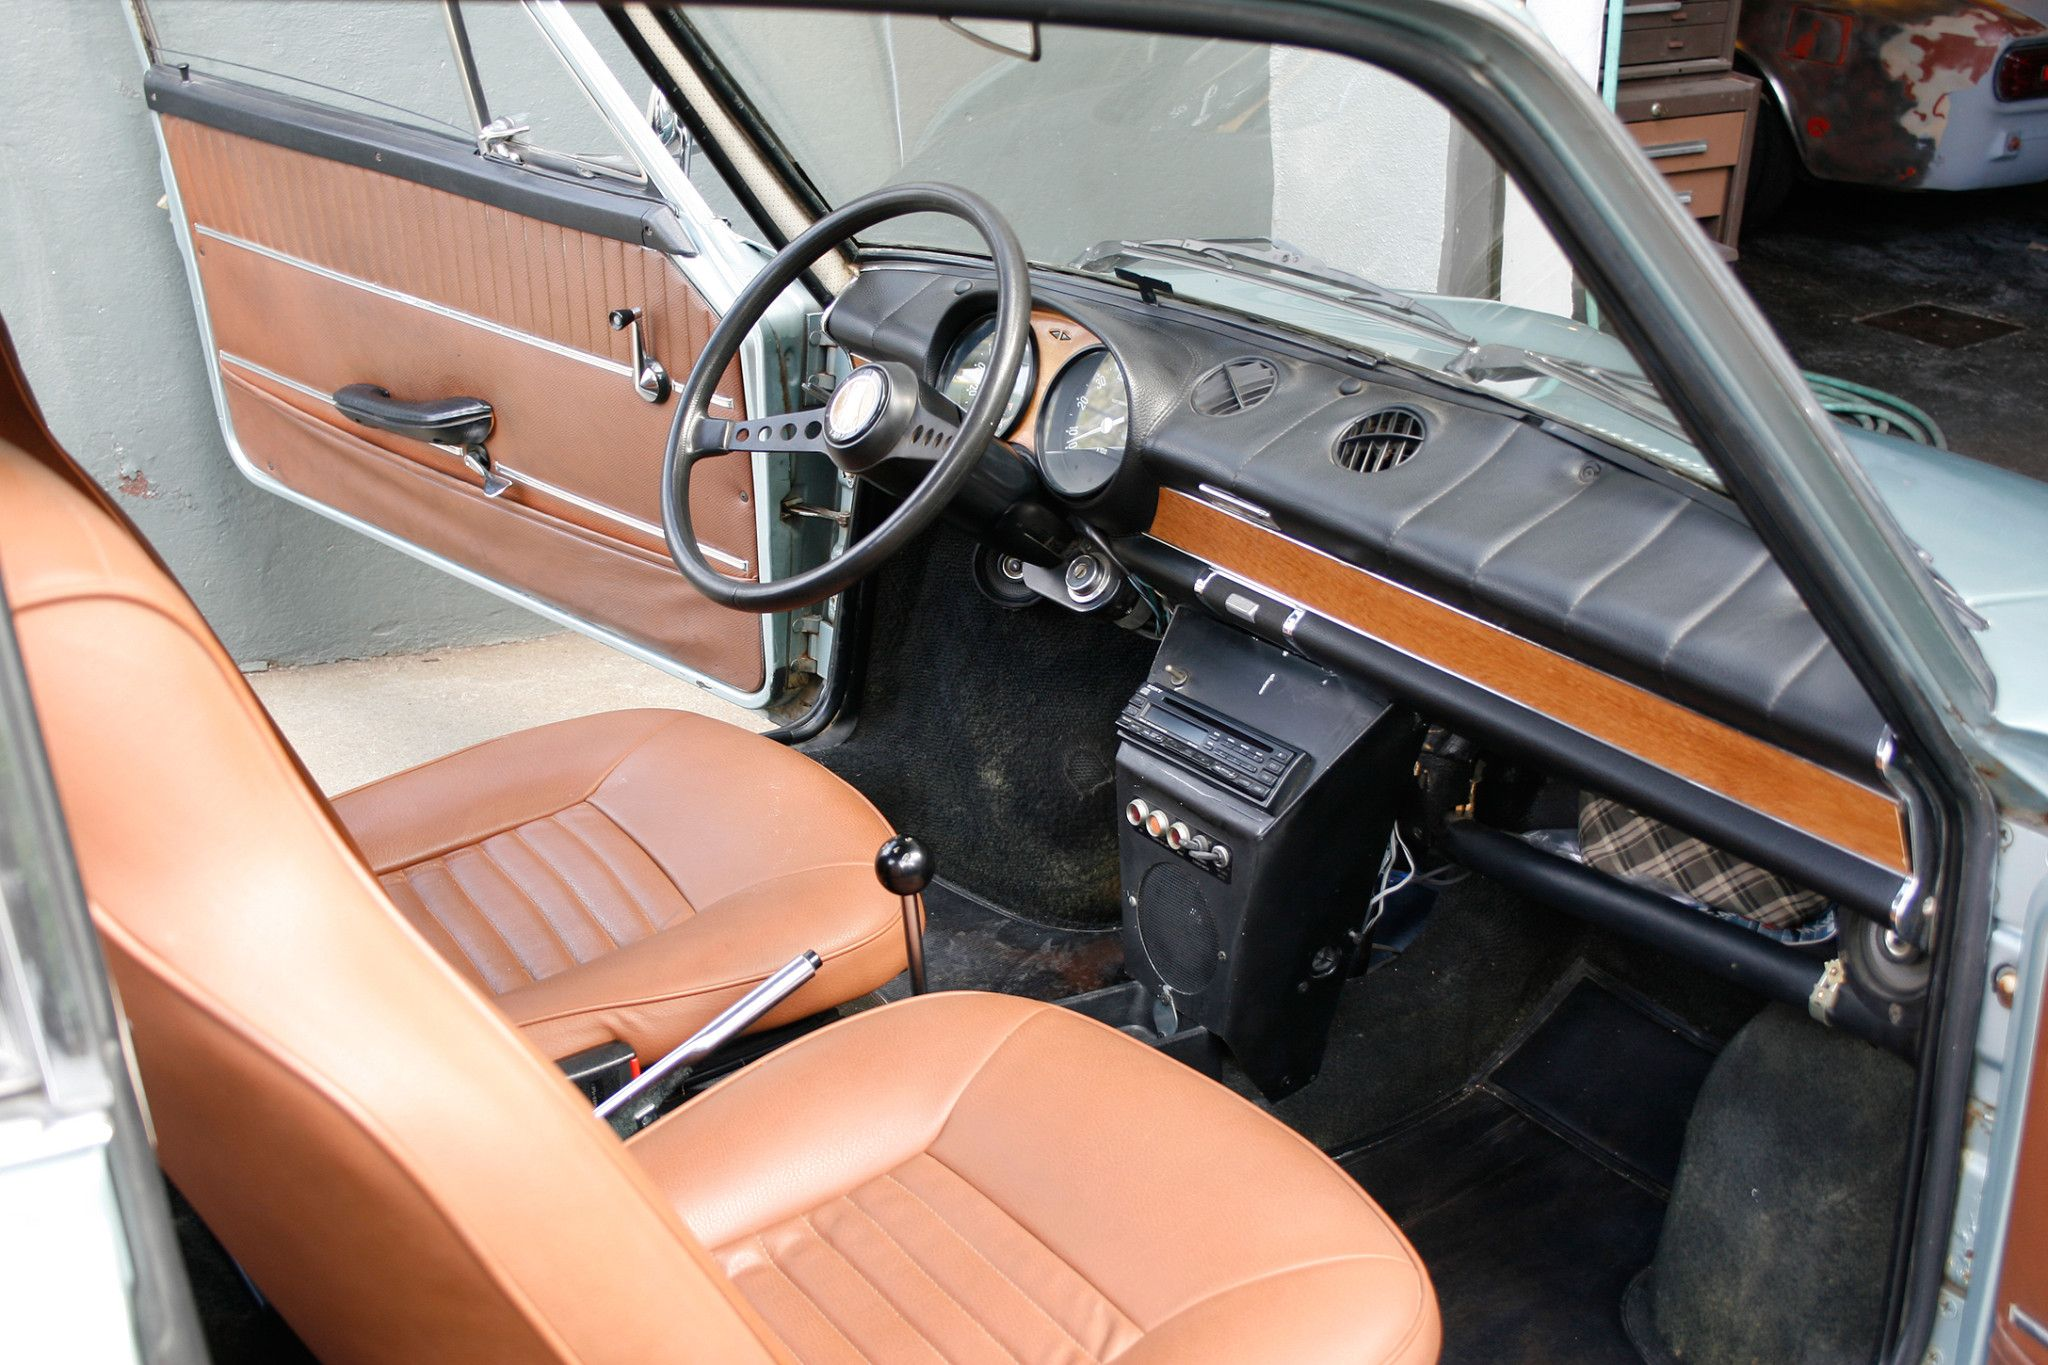 1970 Fiat 850 Sport Coupe With Images Fiat Abarth Fiat Cars